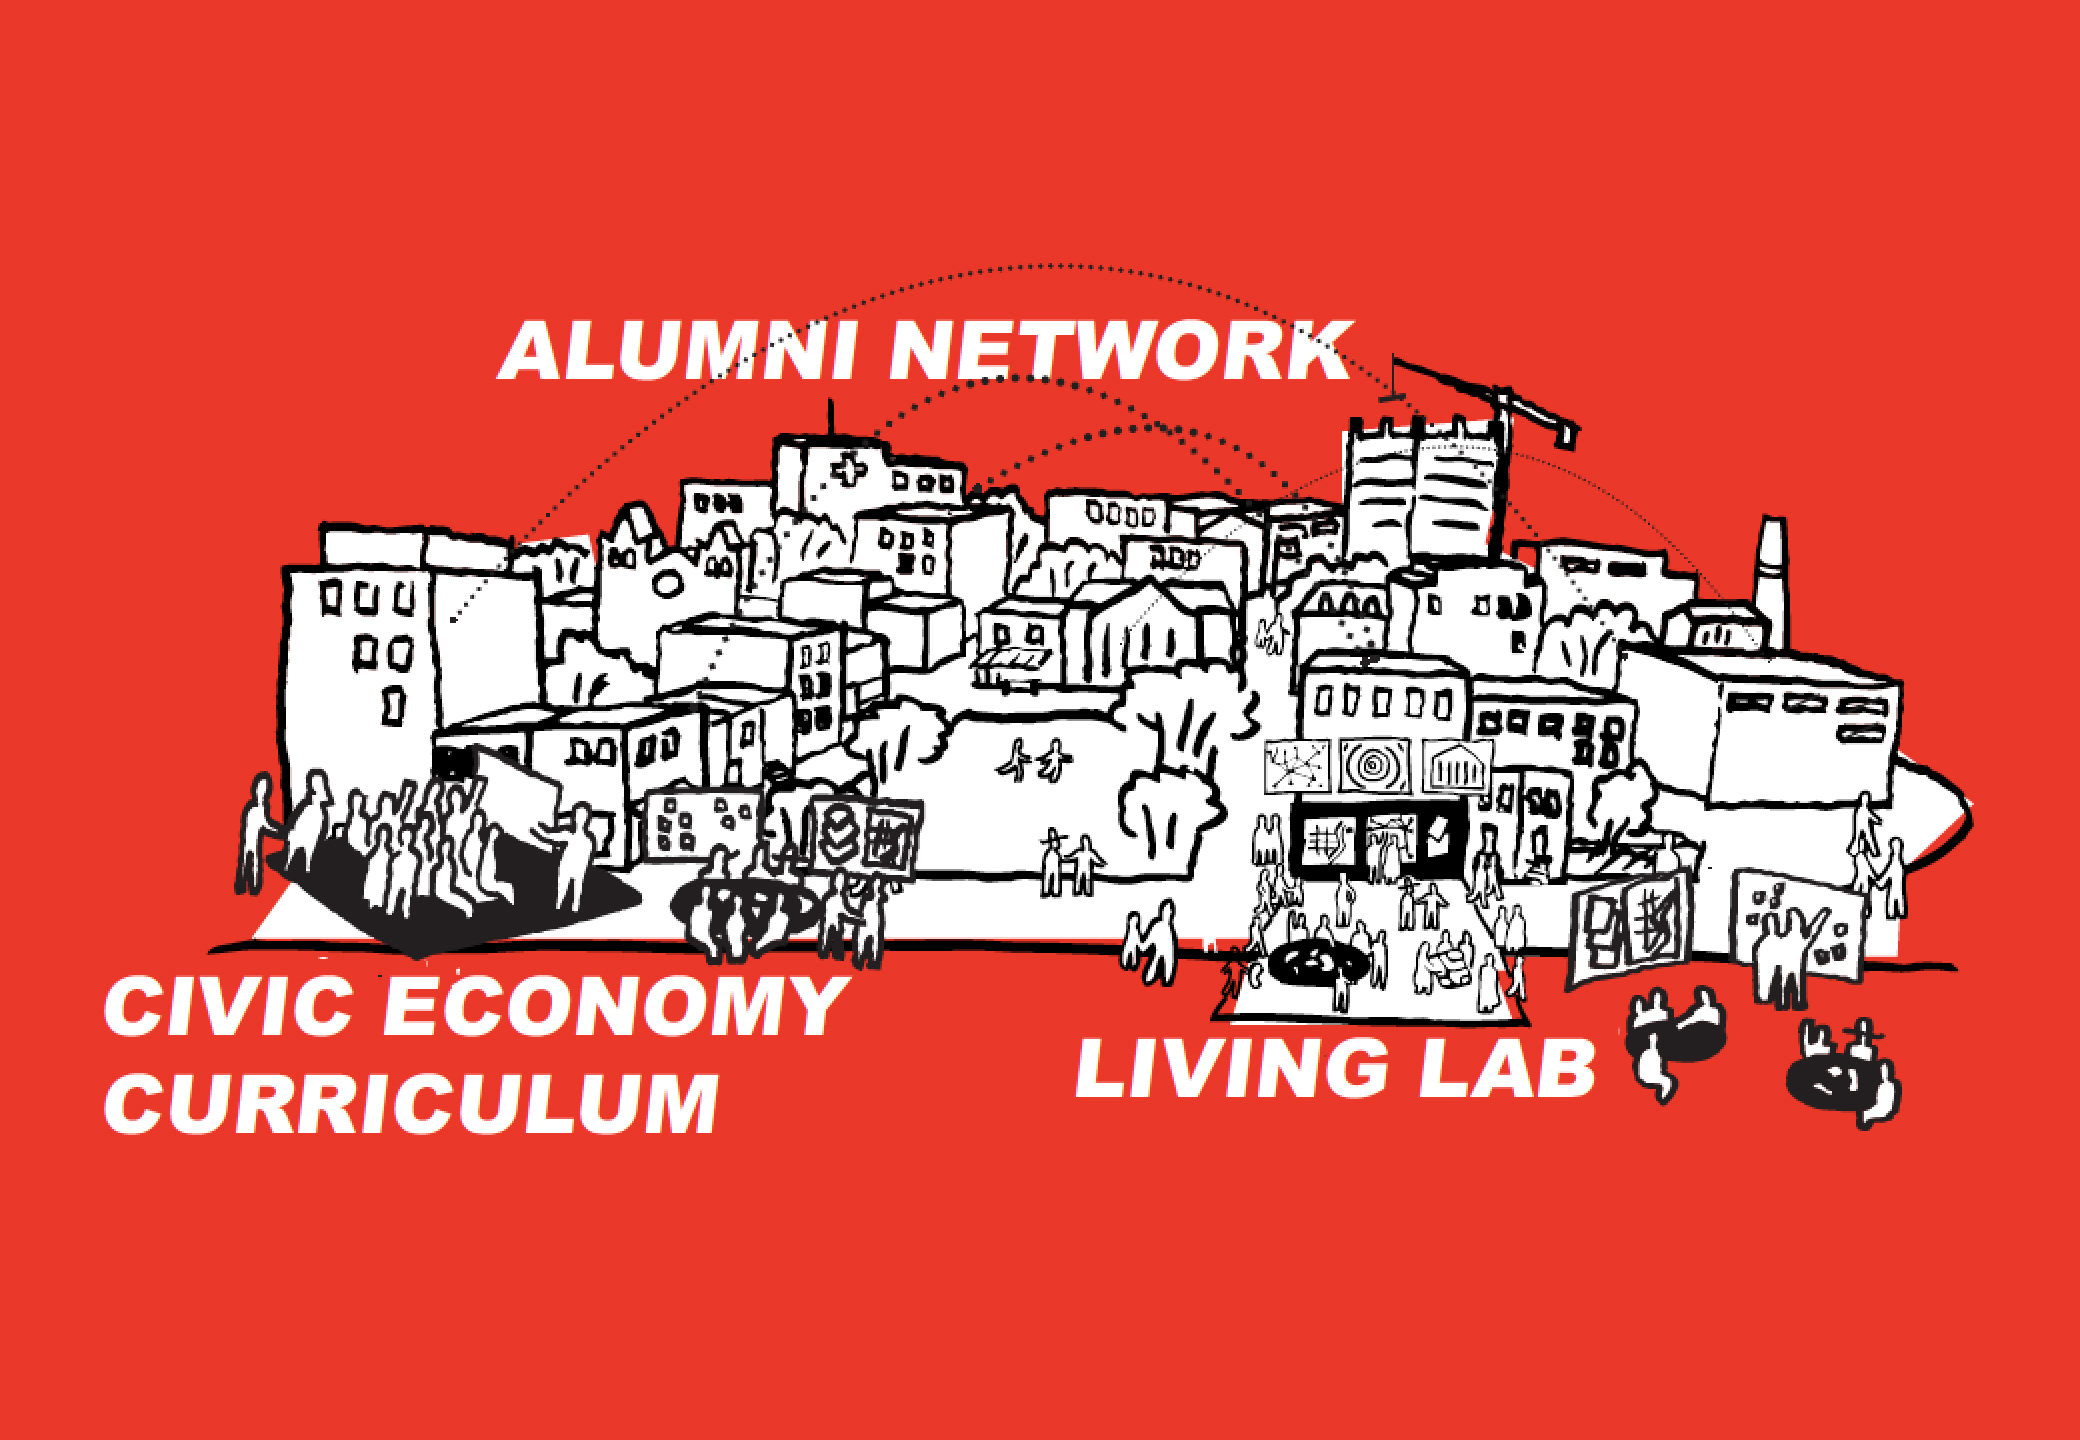 A COOPERATIVE CURRICULUM AND LIVING LAB INCUBATOR WITH MONDRAGON NORTH AMERICA.